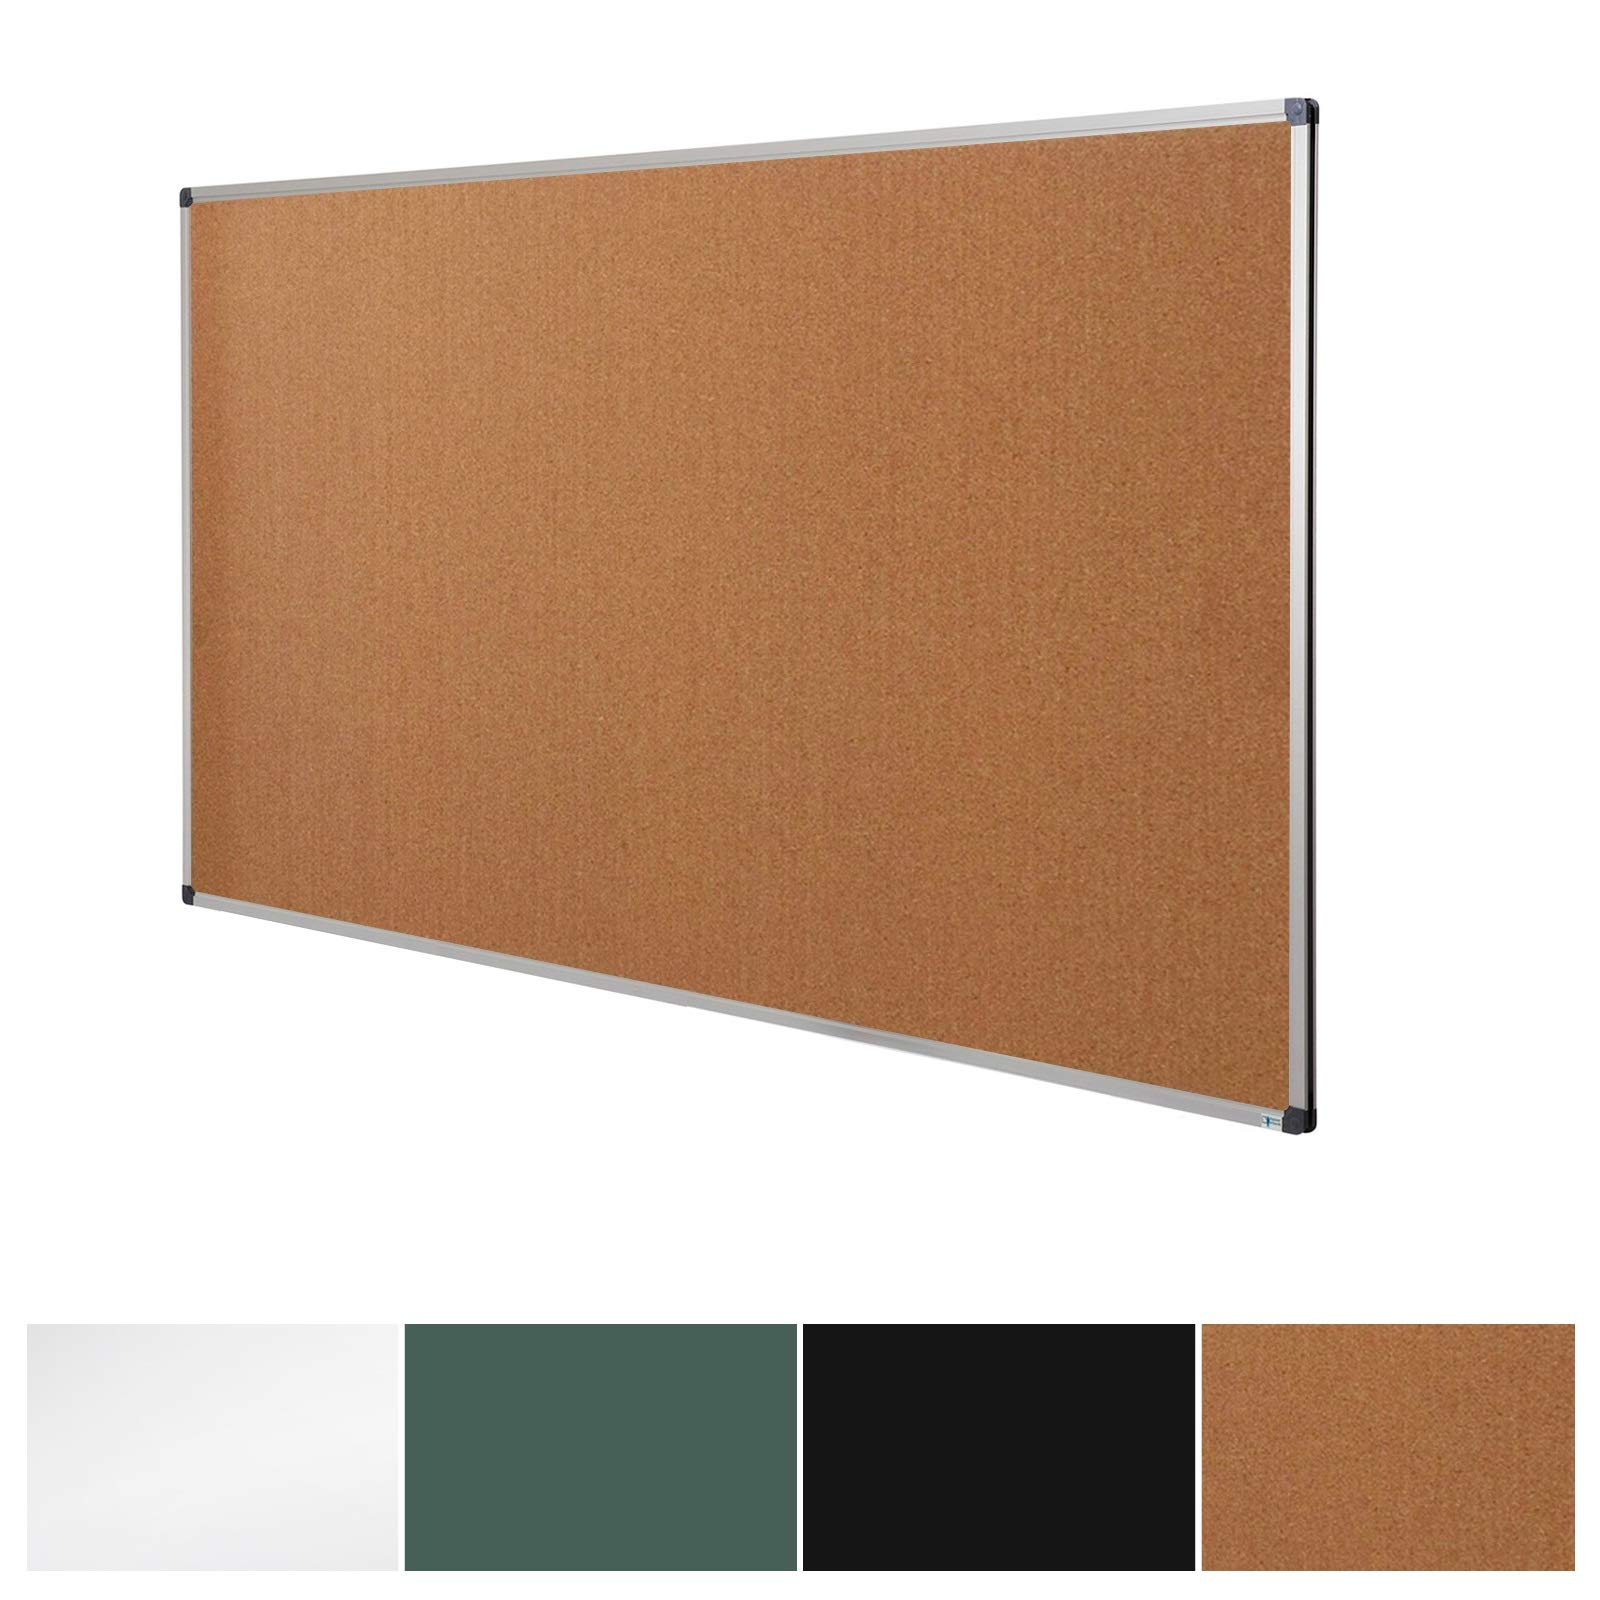 Cork Notice Pin Board | Aluminum Framed Memo Board for Office and Home Use | 3 Sizes Available - 36'' x 24''